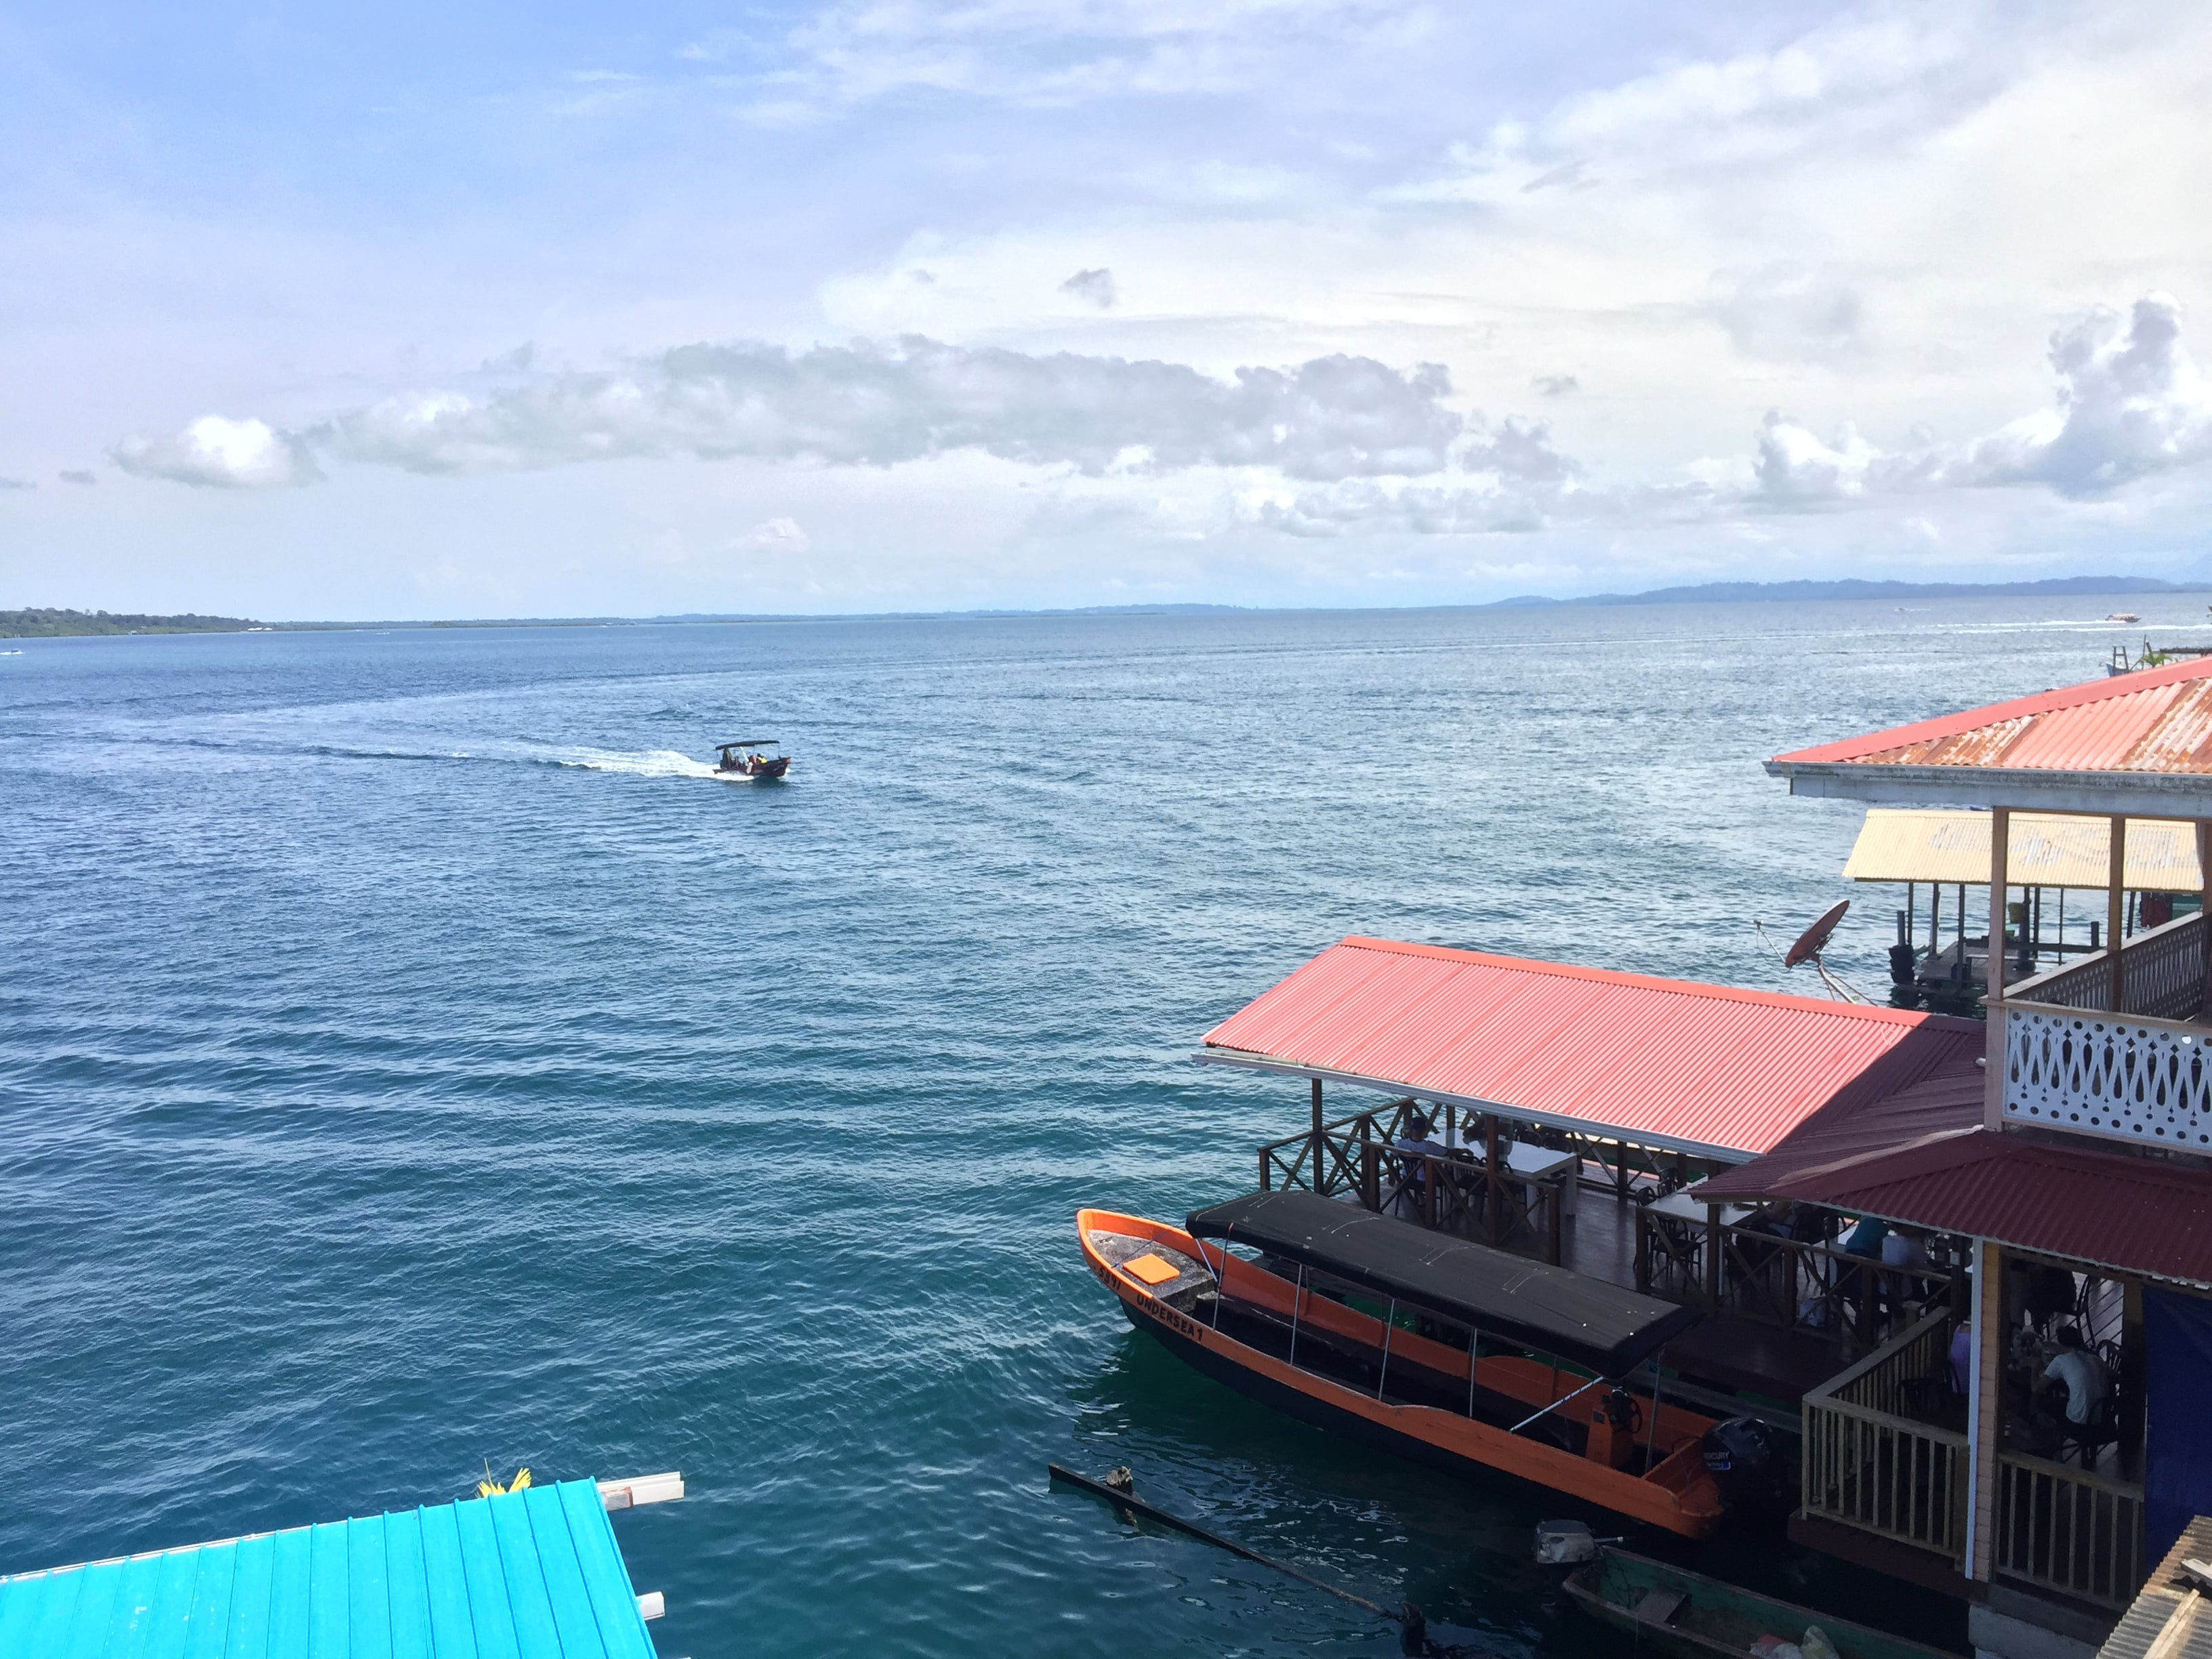 boating in Bocas del Toro, Panama